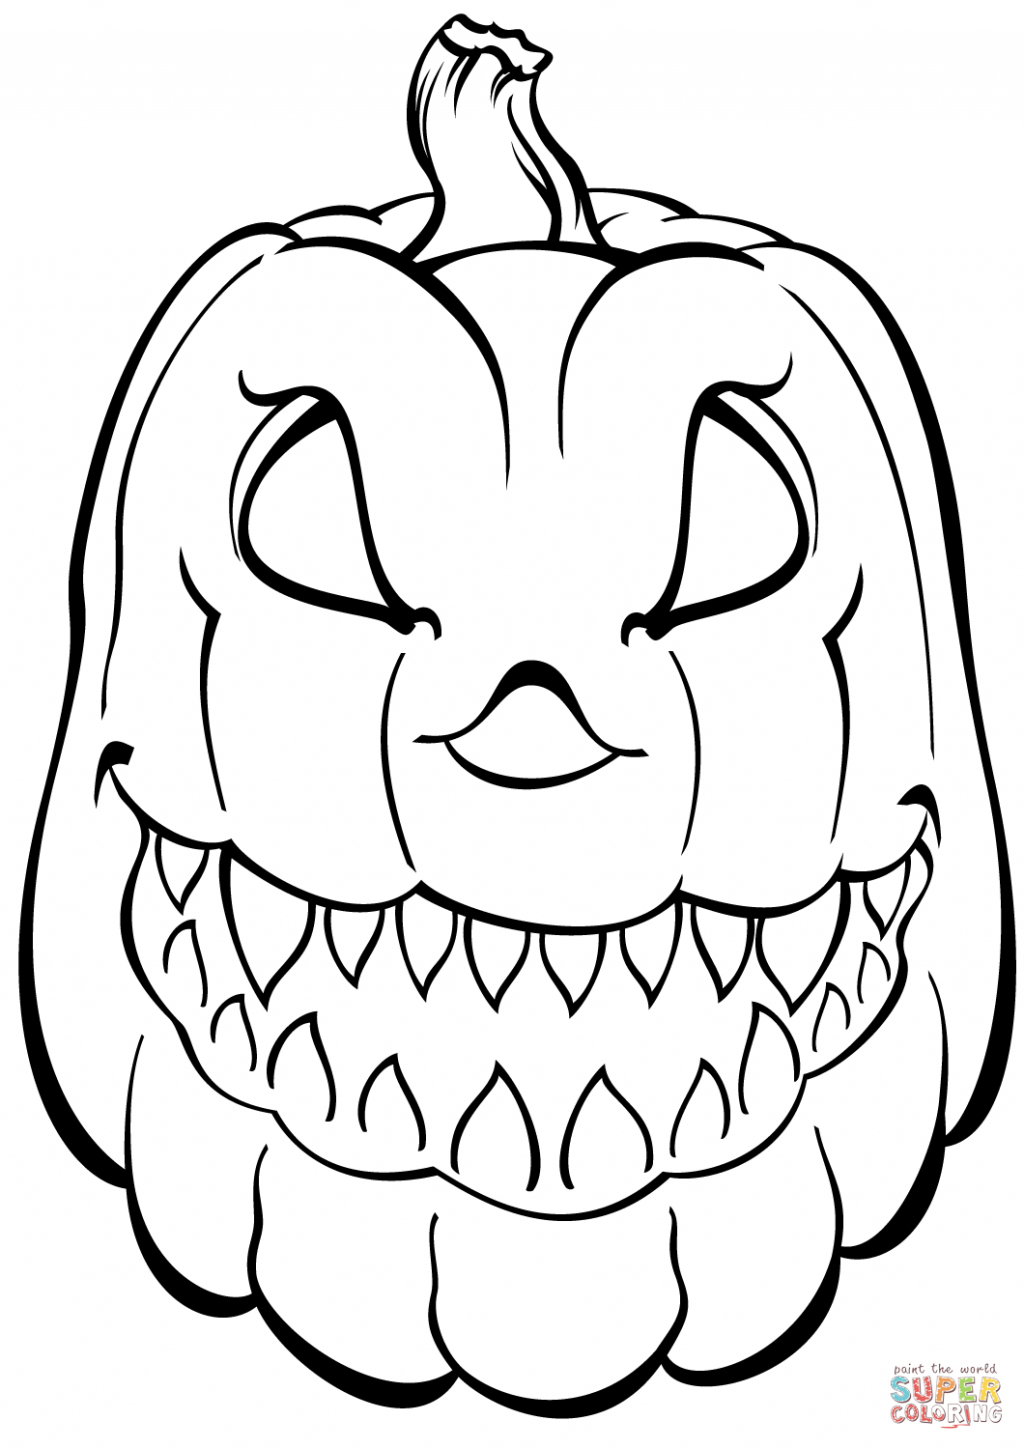 Coloring Page Of Pumpkin Coloring Page Pumpkin Coloring Pages